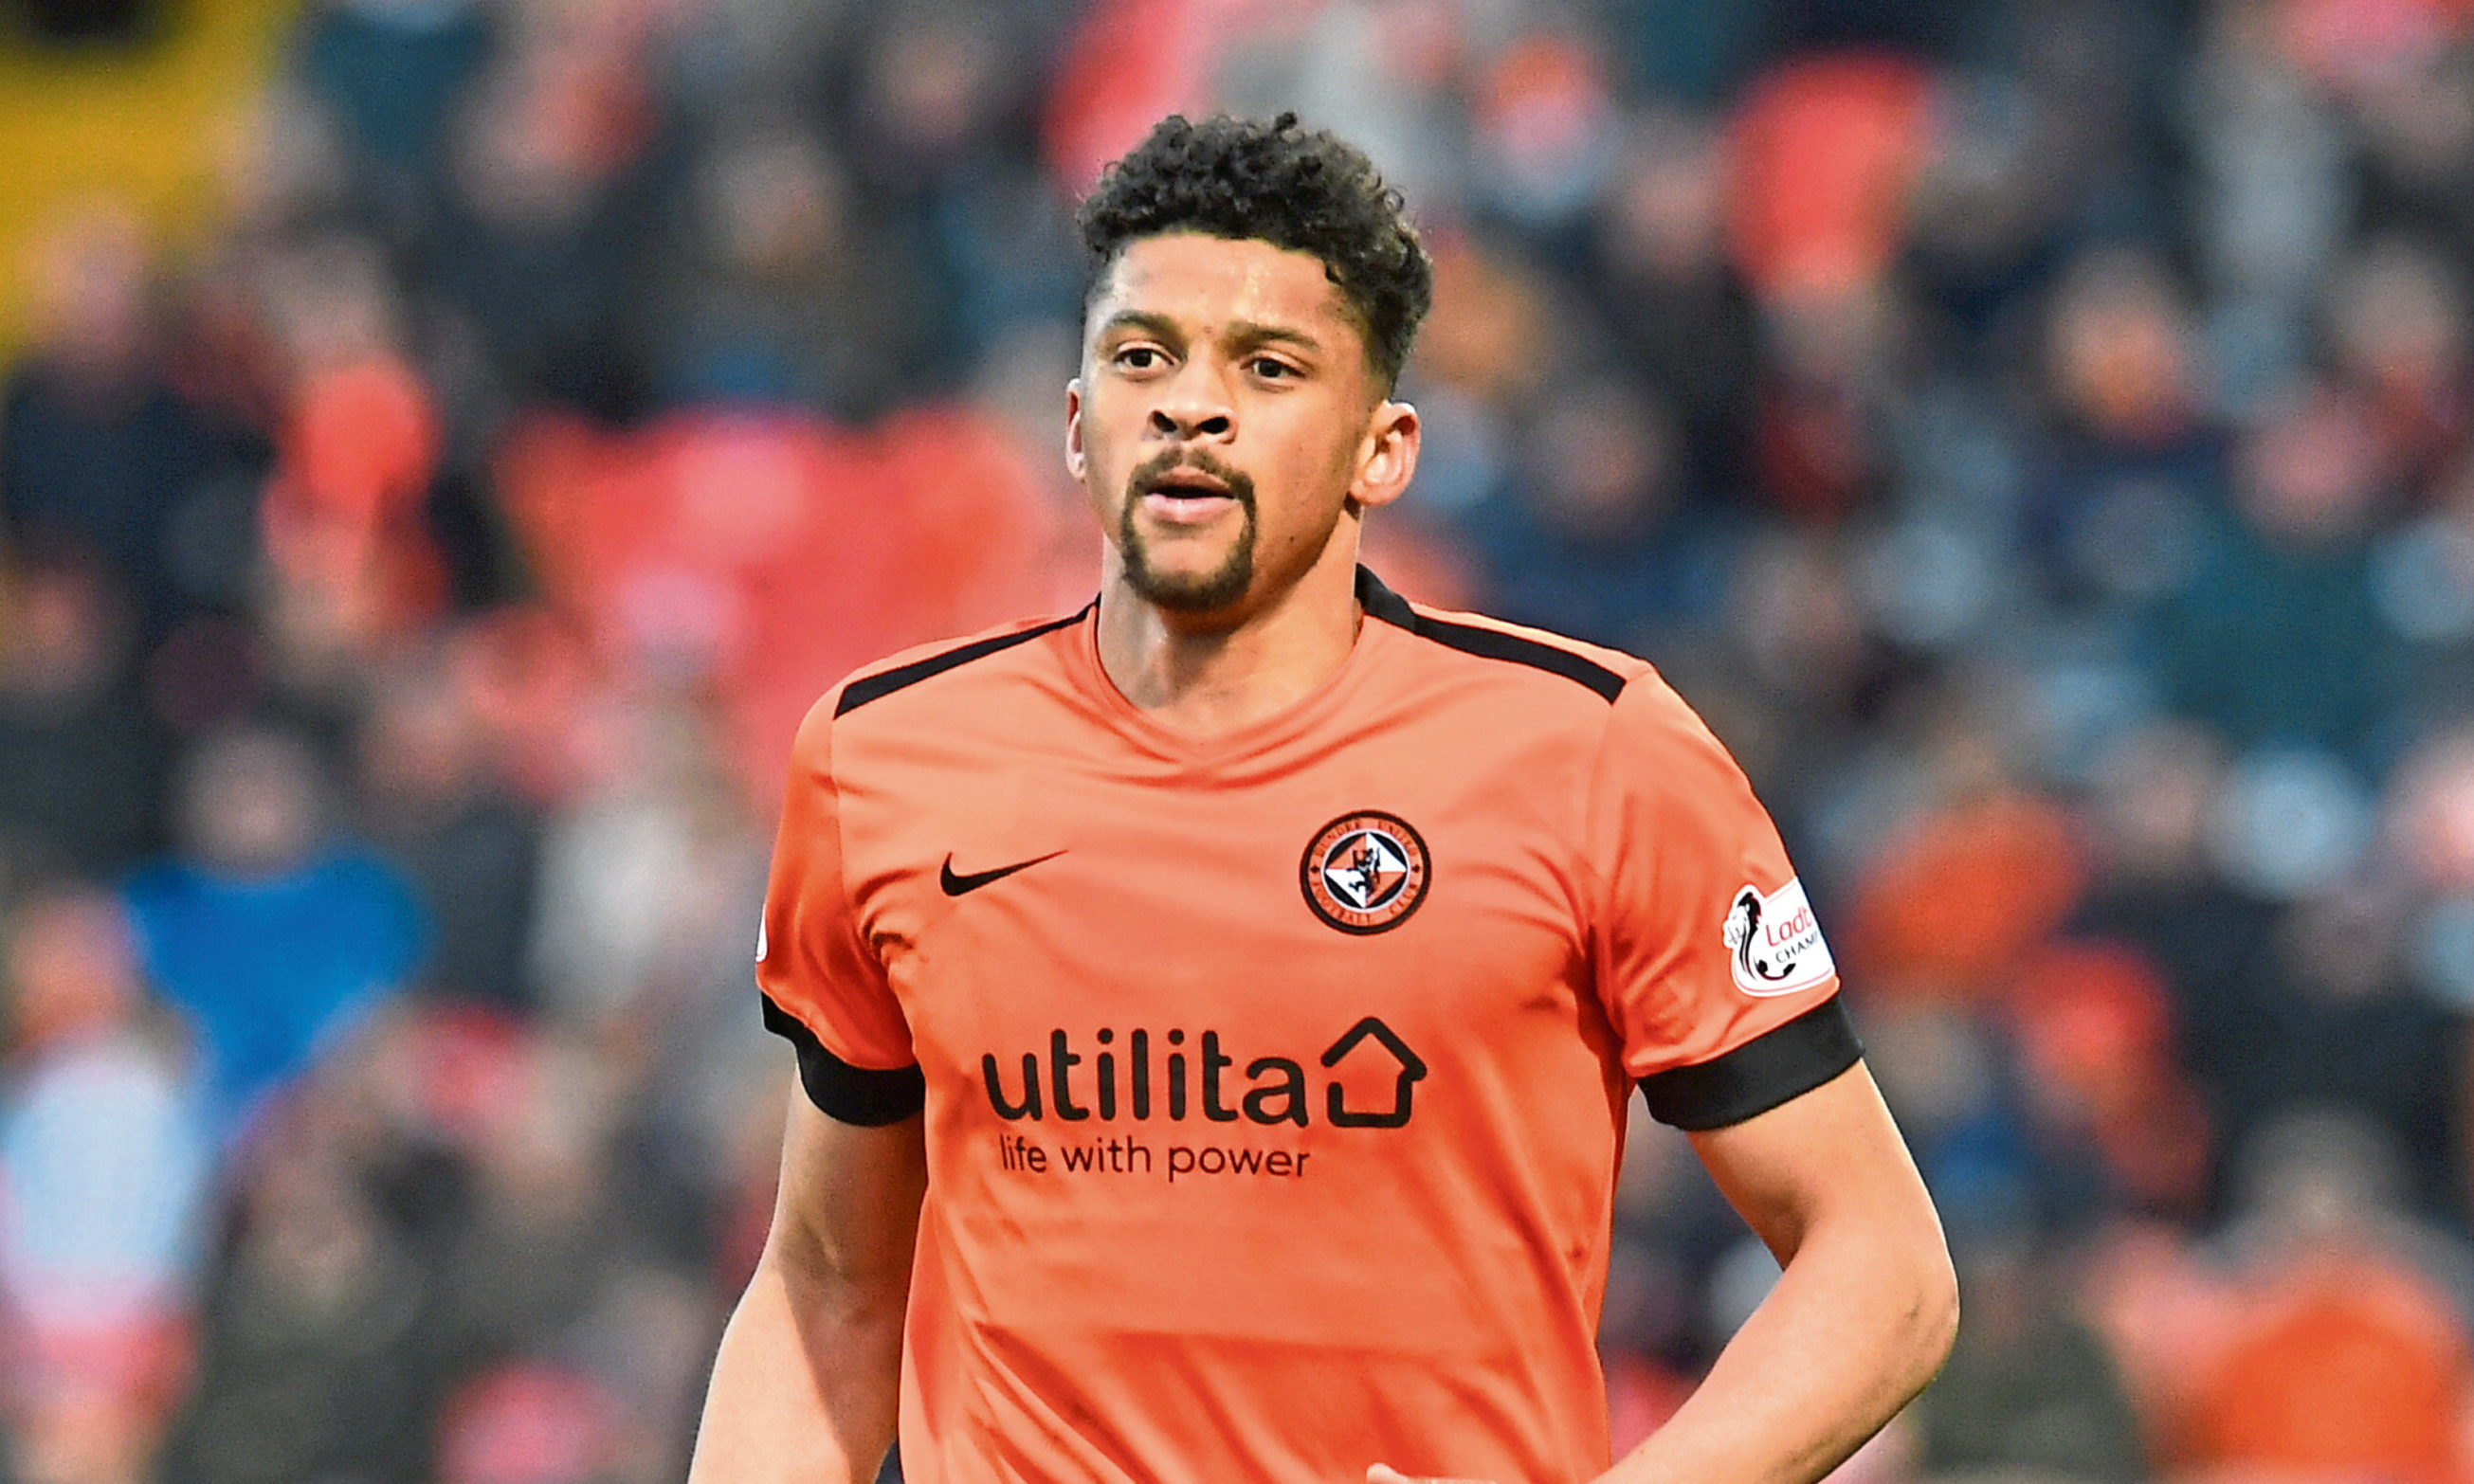 Osman Sow in action for Dundee United.